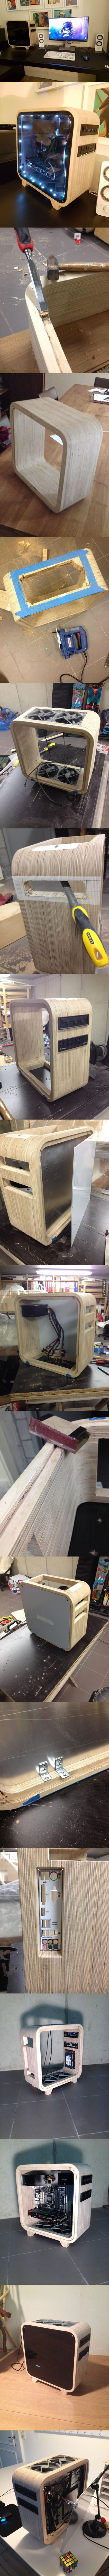 This guy built a PC out of wood